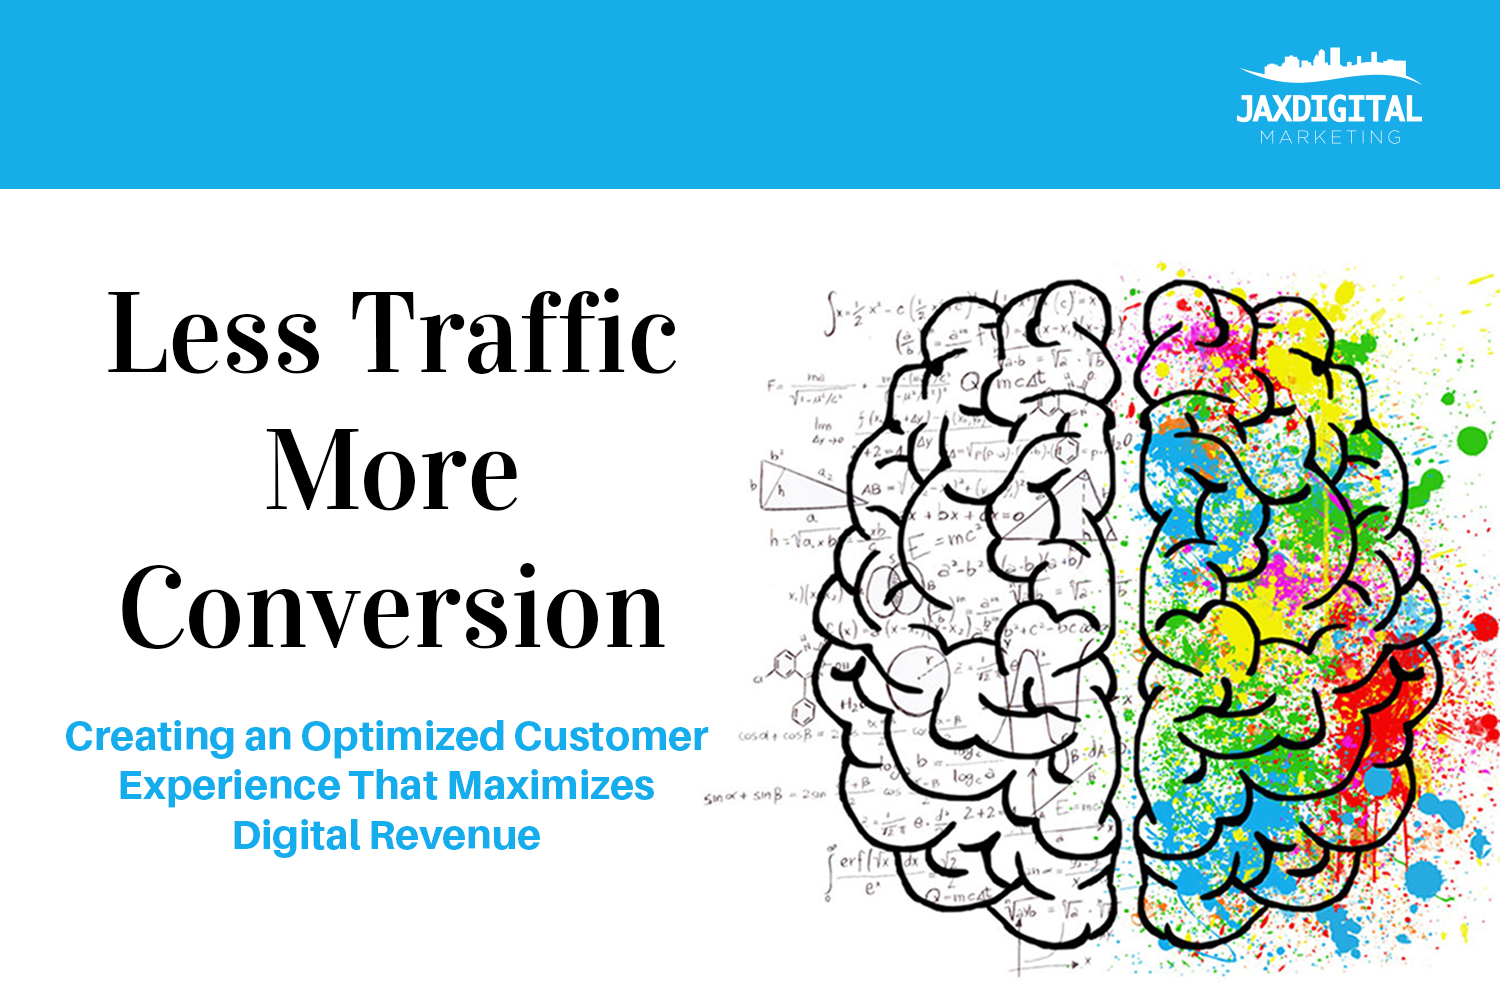 Less Traffic More Conversion